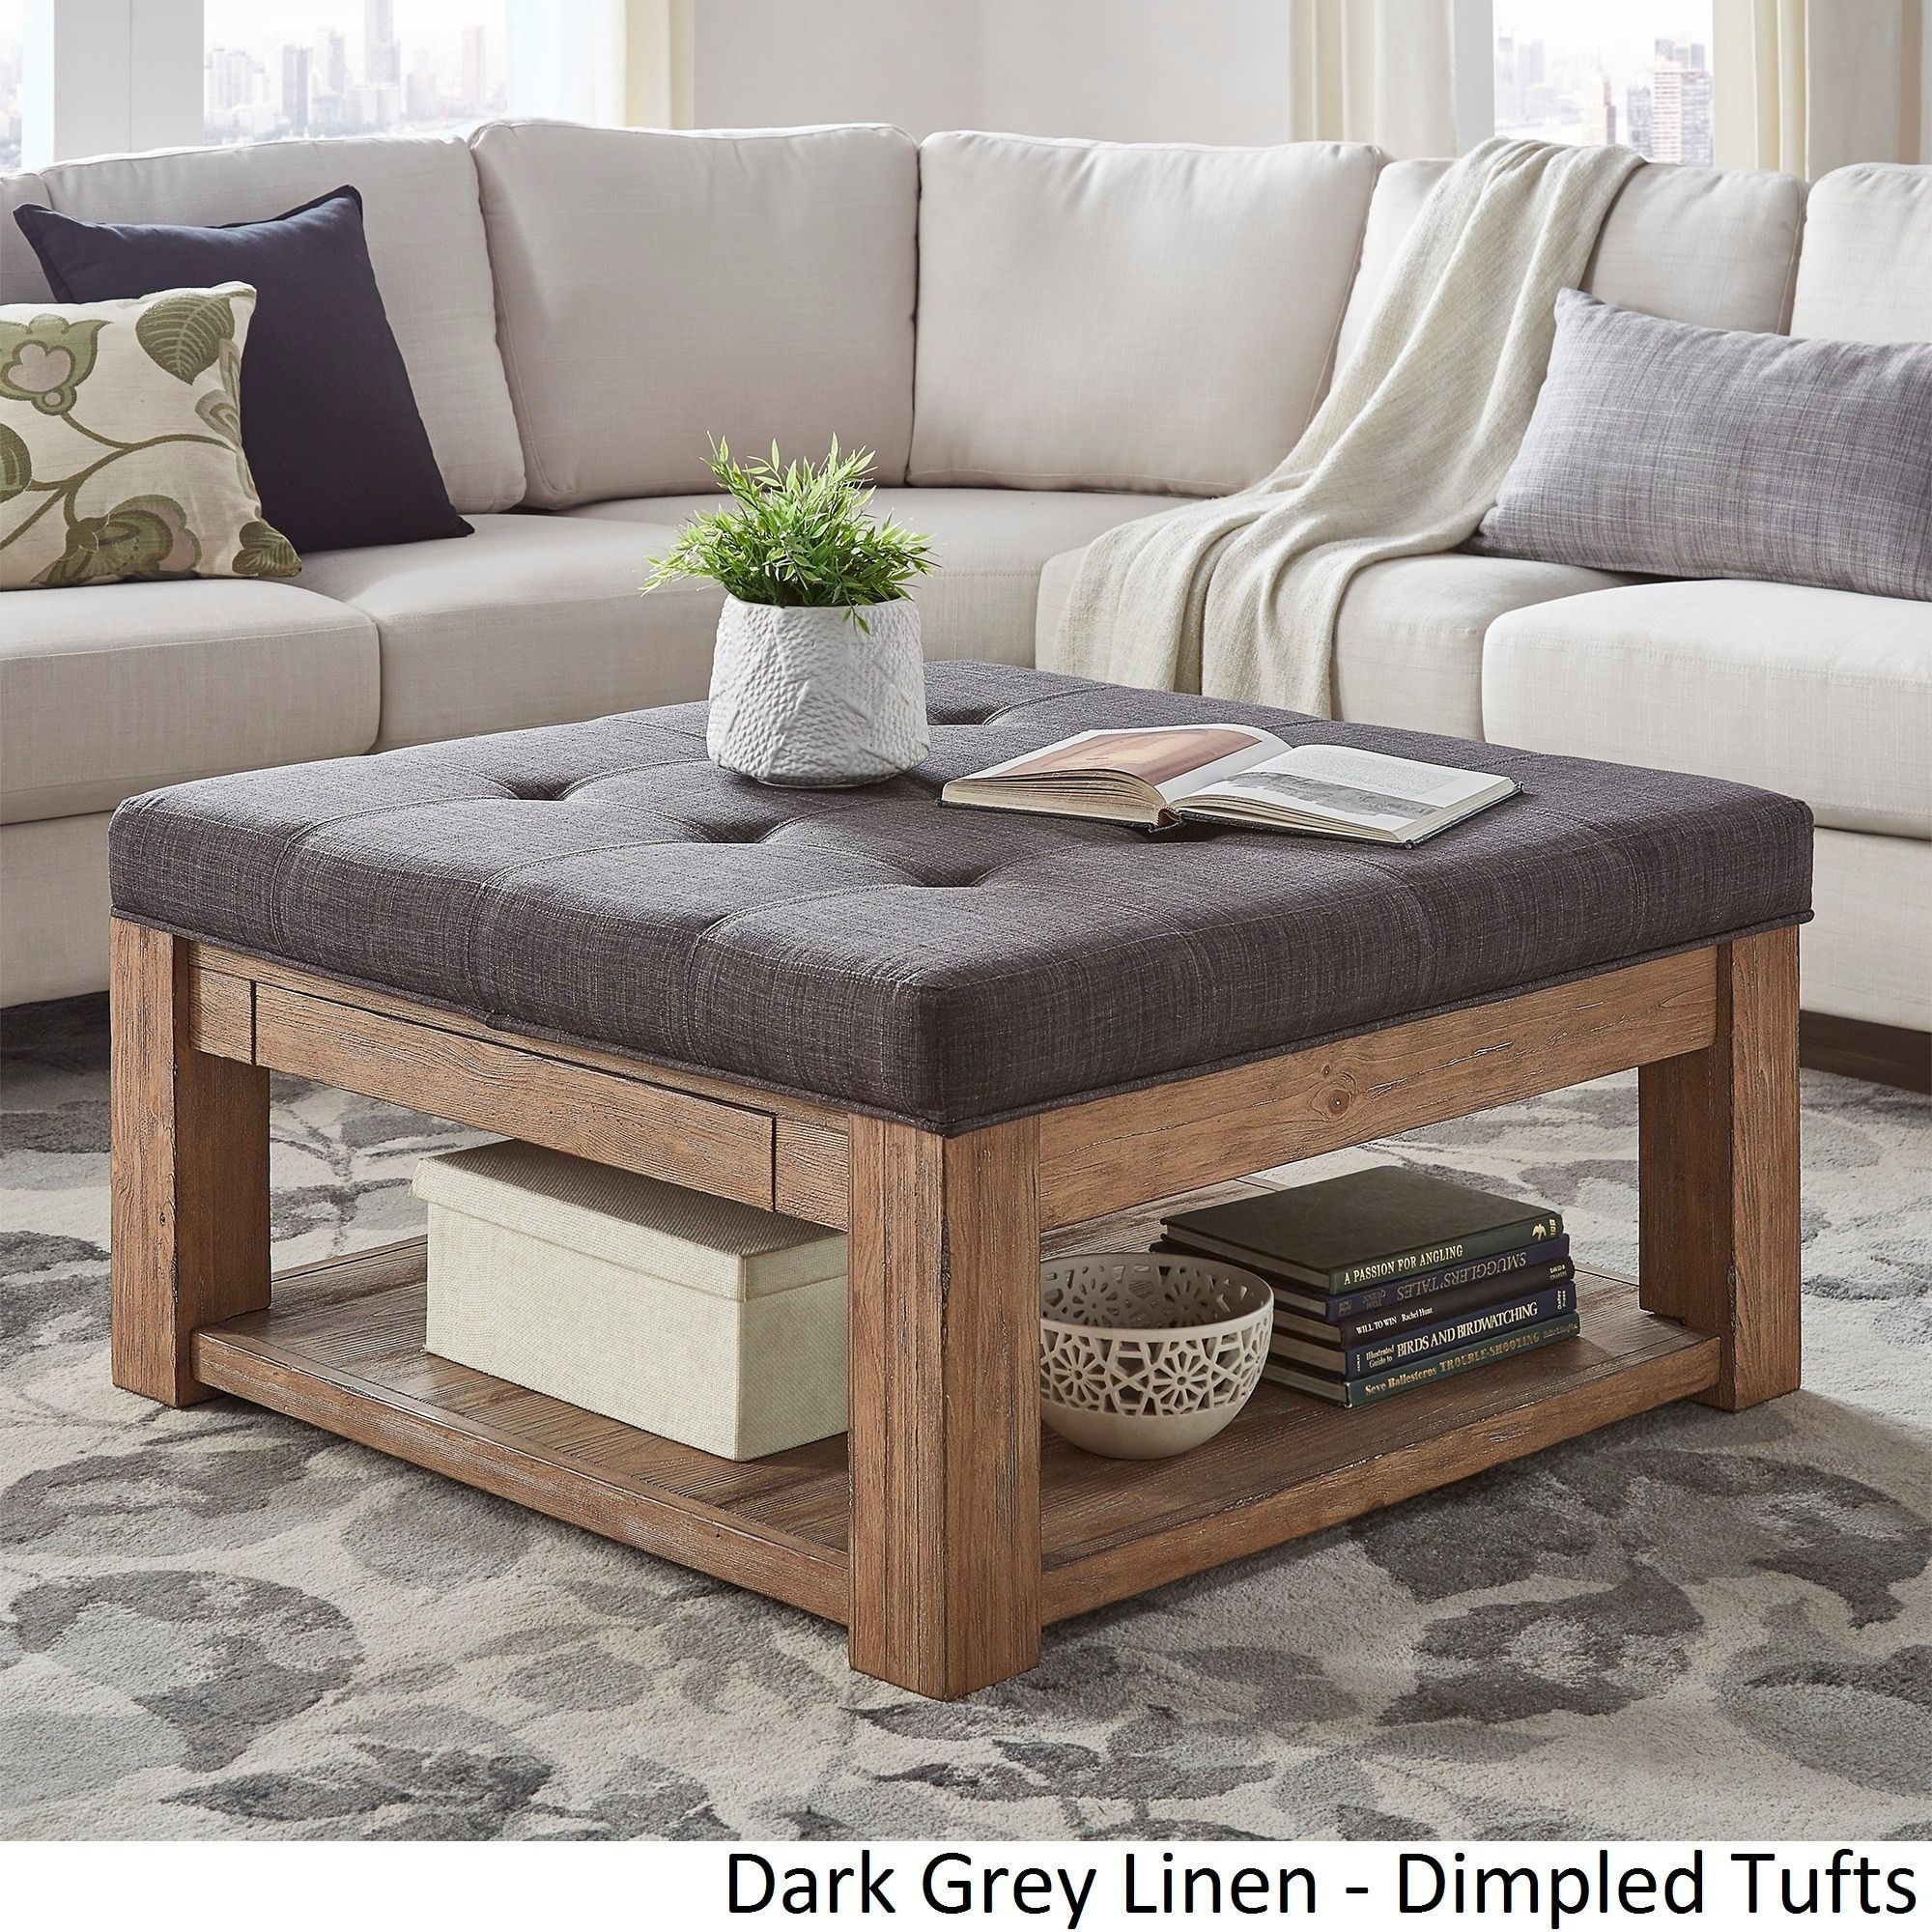 Lennon Pine Square Storage Ottoman Coffee Table by iNSPIRE Q Artisan ([Dark Grey Linen]- Dimpled Tufts) Black (Fabric) & Lennon Pine Square Storage Ottoman Coffee (Brown) Table by iNSPIRE Q ...